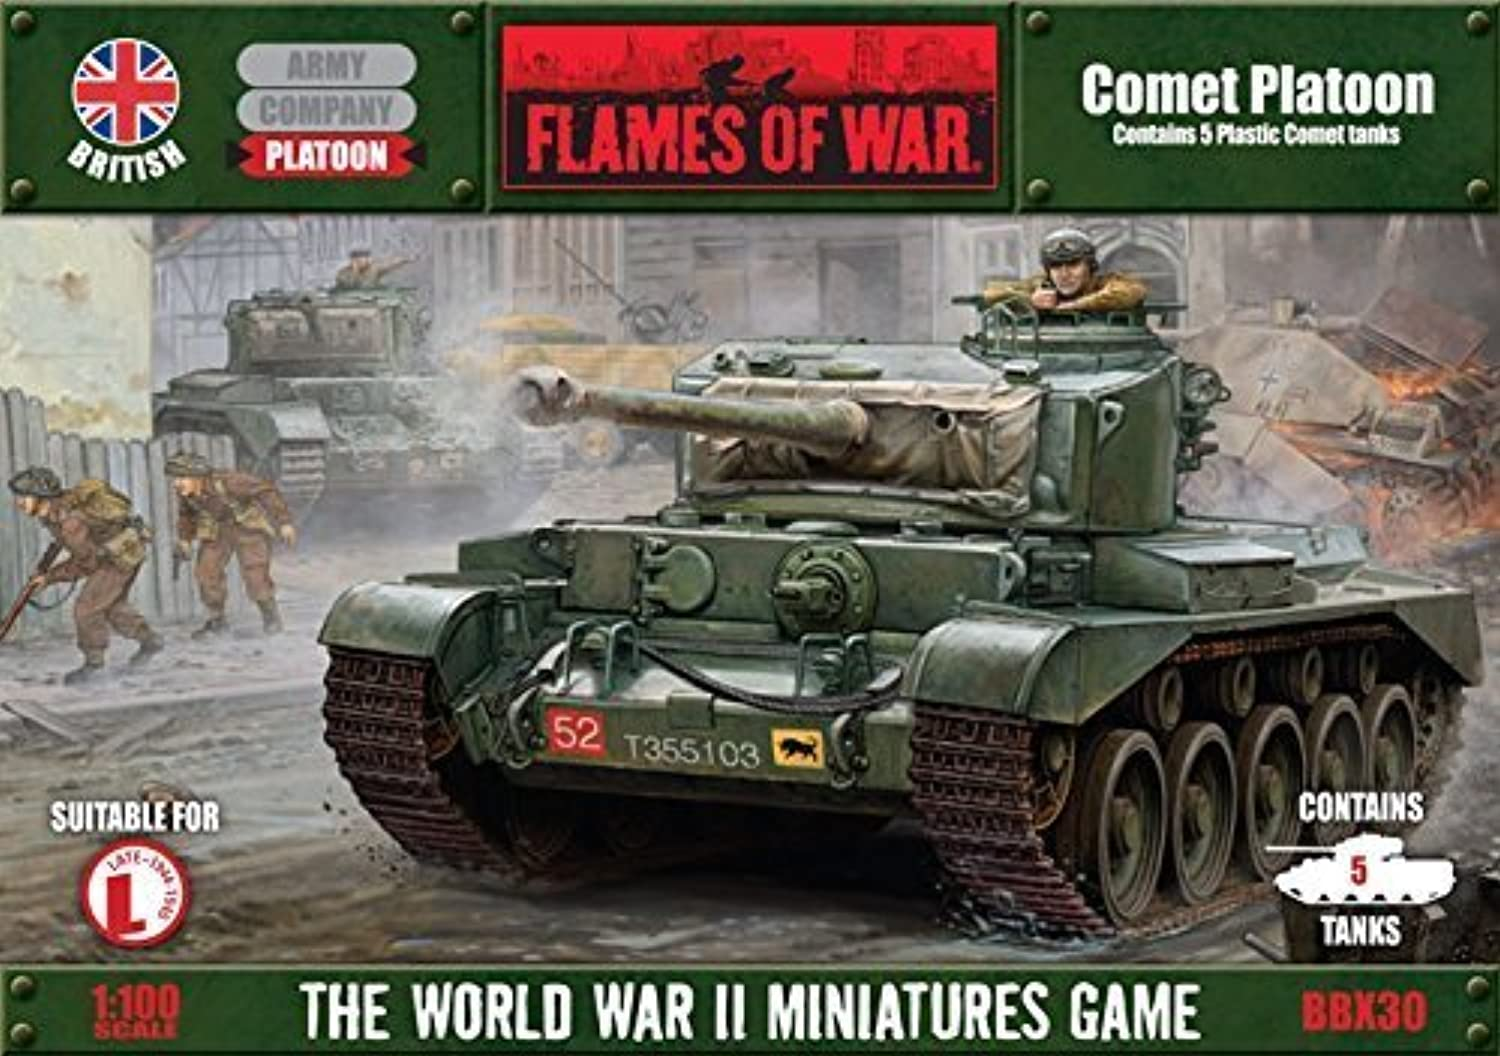 Comet Platoon  WWII Miniatures Game by Flames of War